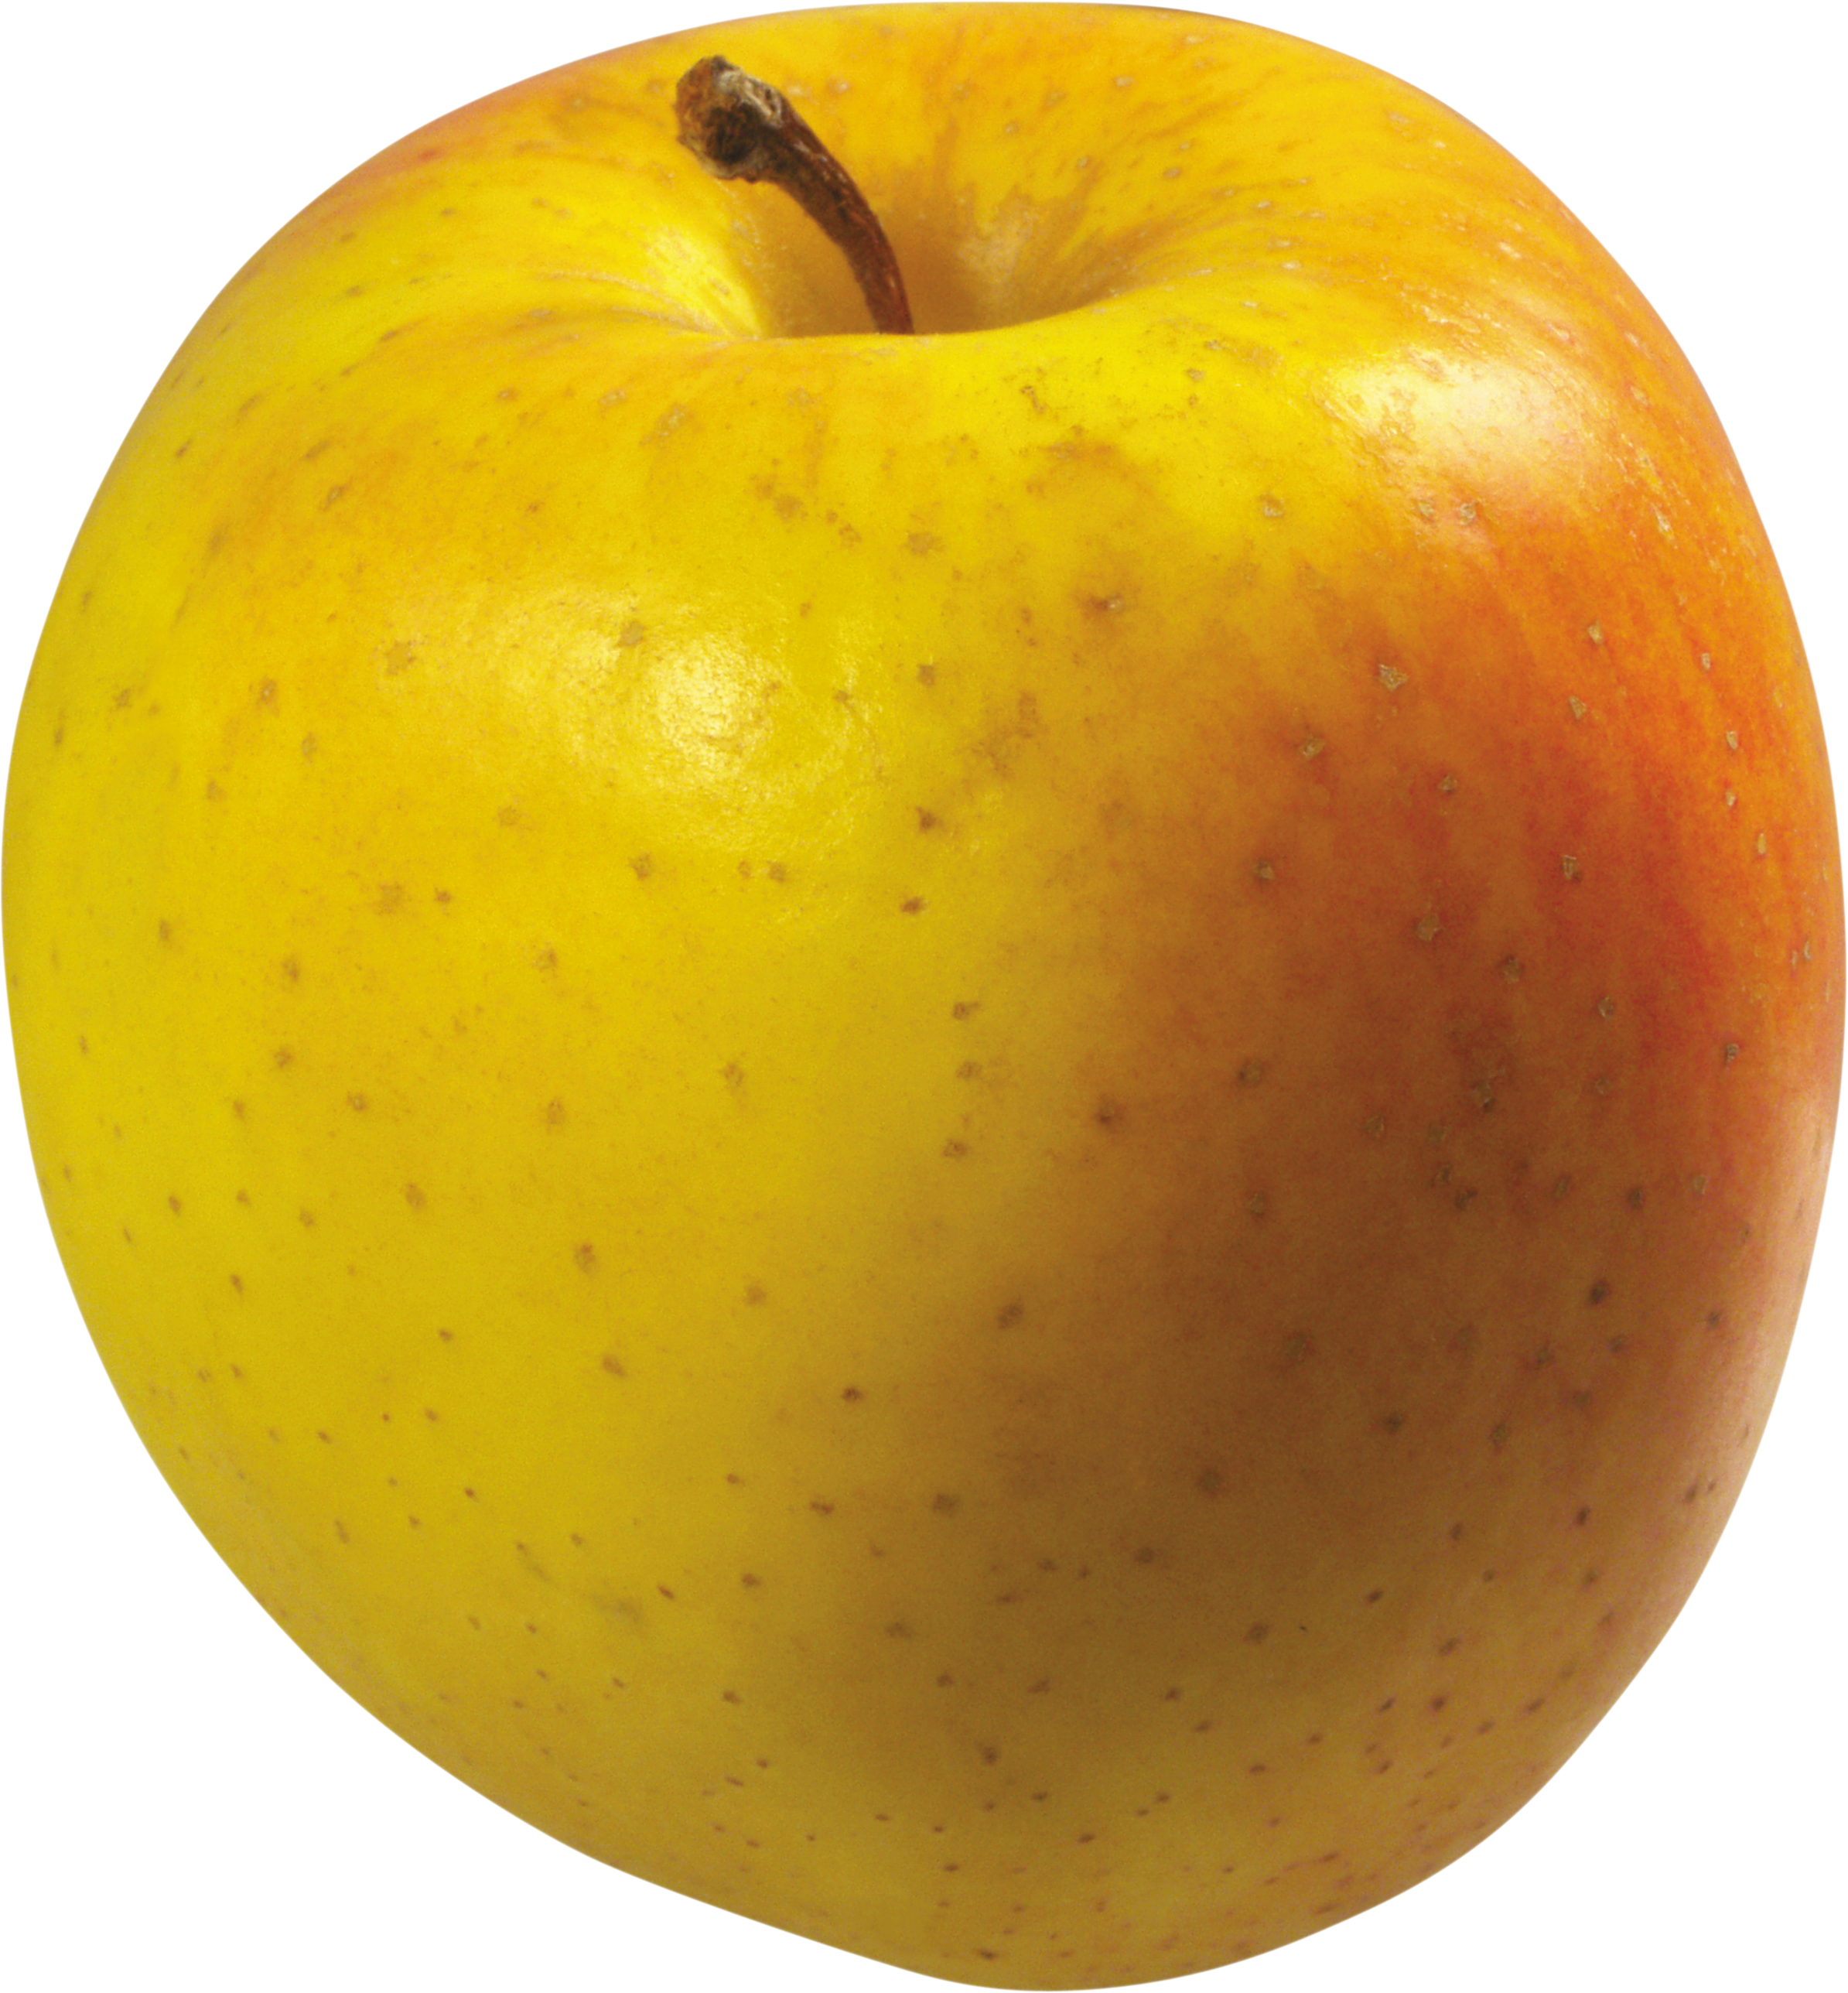 Golden delicious apple fruit clipart graphic free stock Yellow Apple PNG Image - PurePNG | Free transparent CC0 PNG Image ... graphic free stock